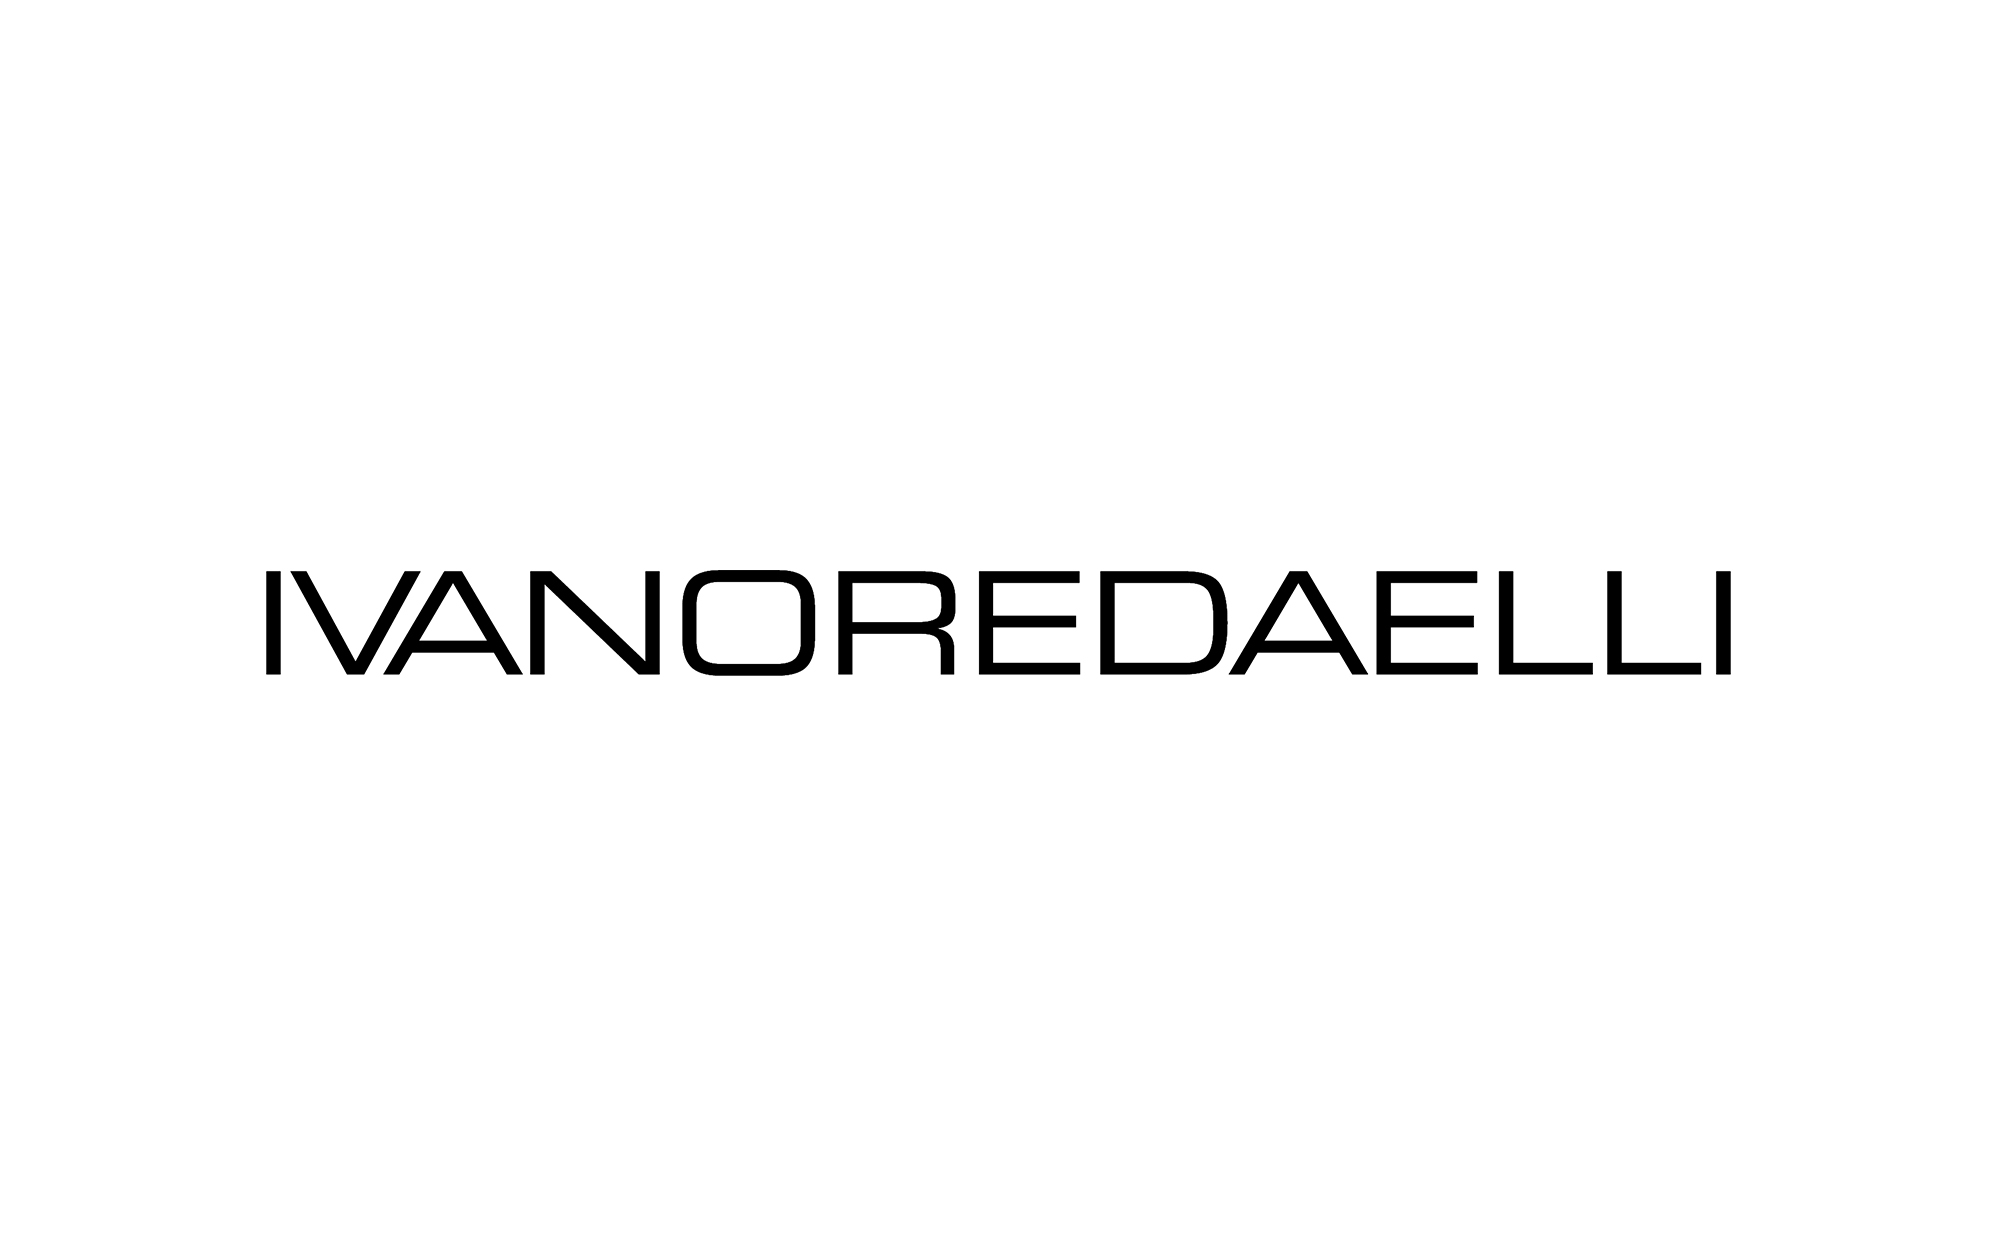 Supplier_Logo_-_Ivano_Redaellijpg